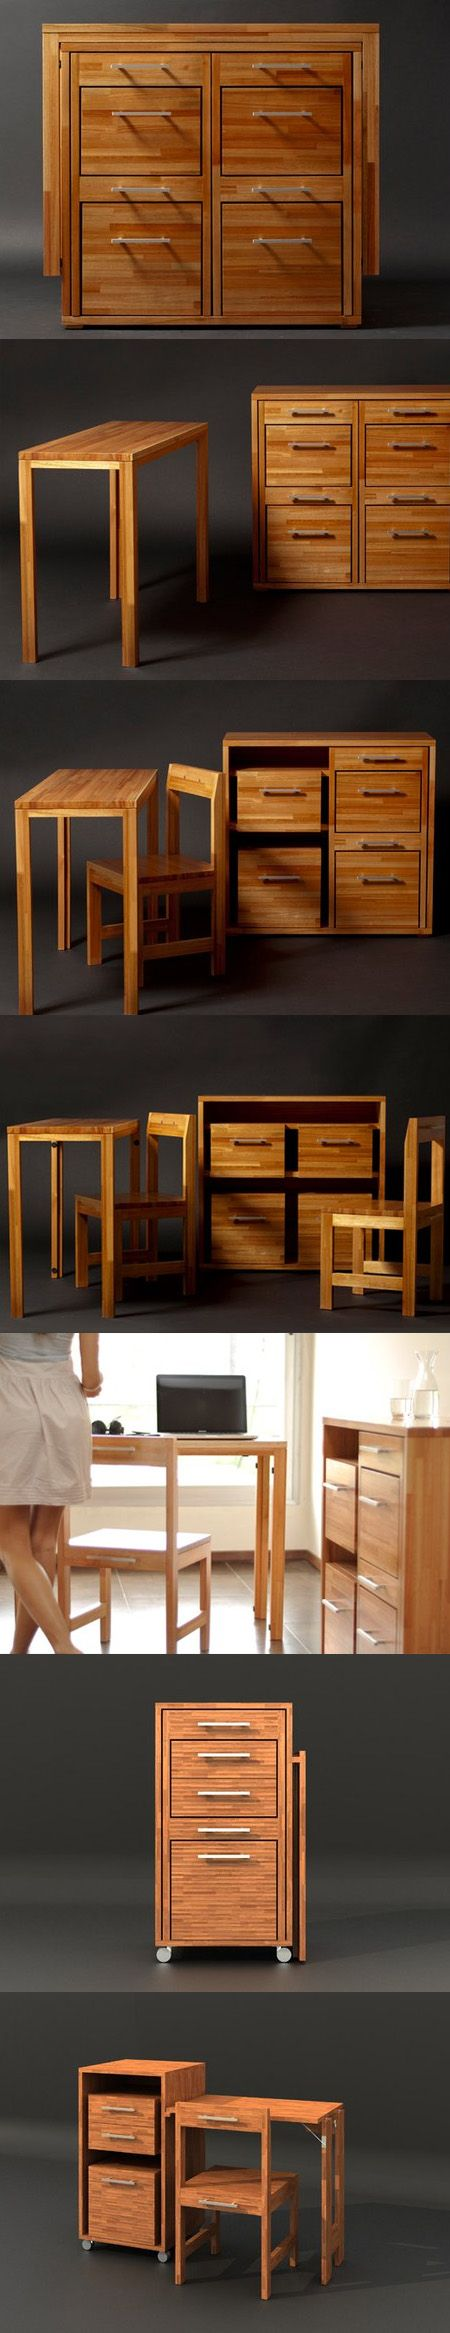 ideas about Multipurpose Furniture on Pinterest Space